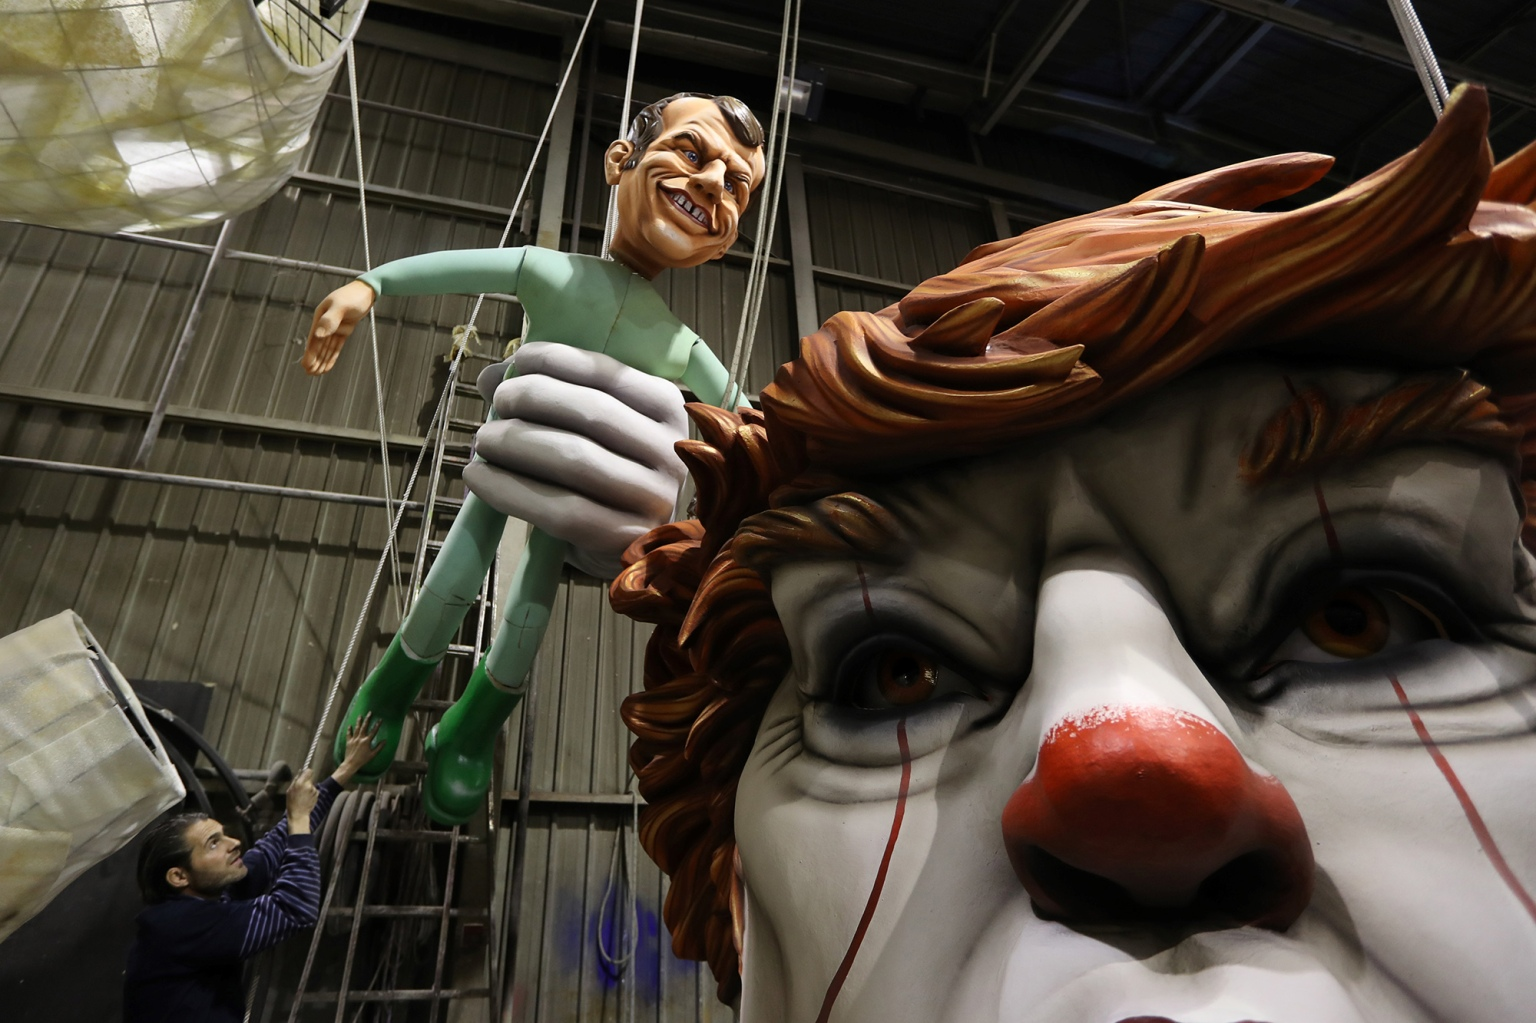 People prepare for the 135rd Nice Carnival in southeastern France on Feb. 4. (Valery Hache/AFP/Getty Images)